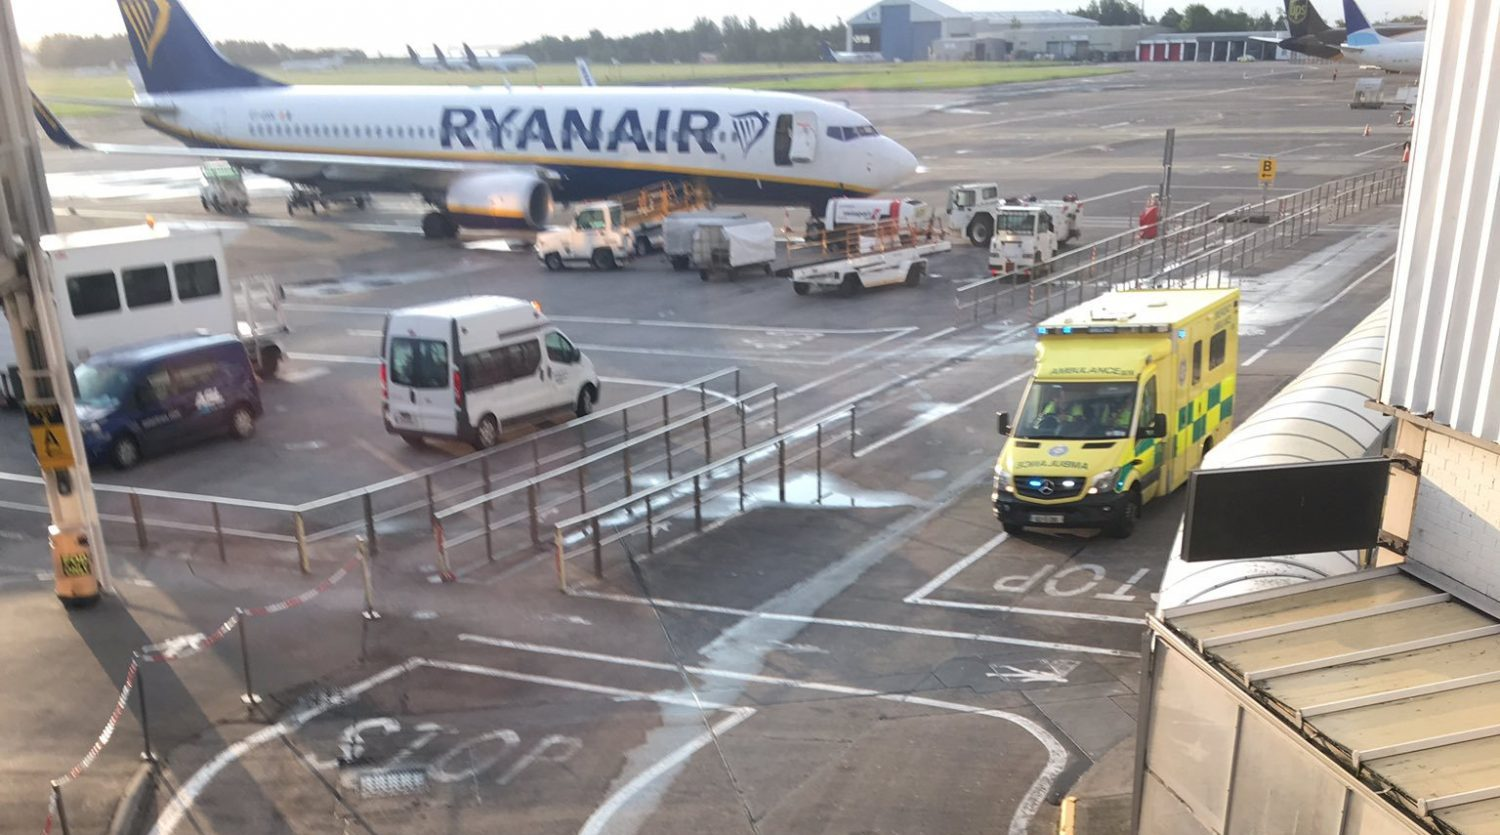 Emergency vehicles respond after an Omni Air International Boeing 767-300 (not pictured) caught fire at Shannon Airport, Ireland August 15, 2019 in this image obtained from social media. Charles Pereira via REUTERS